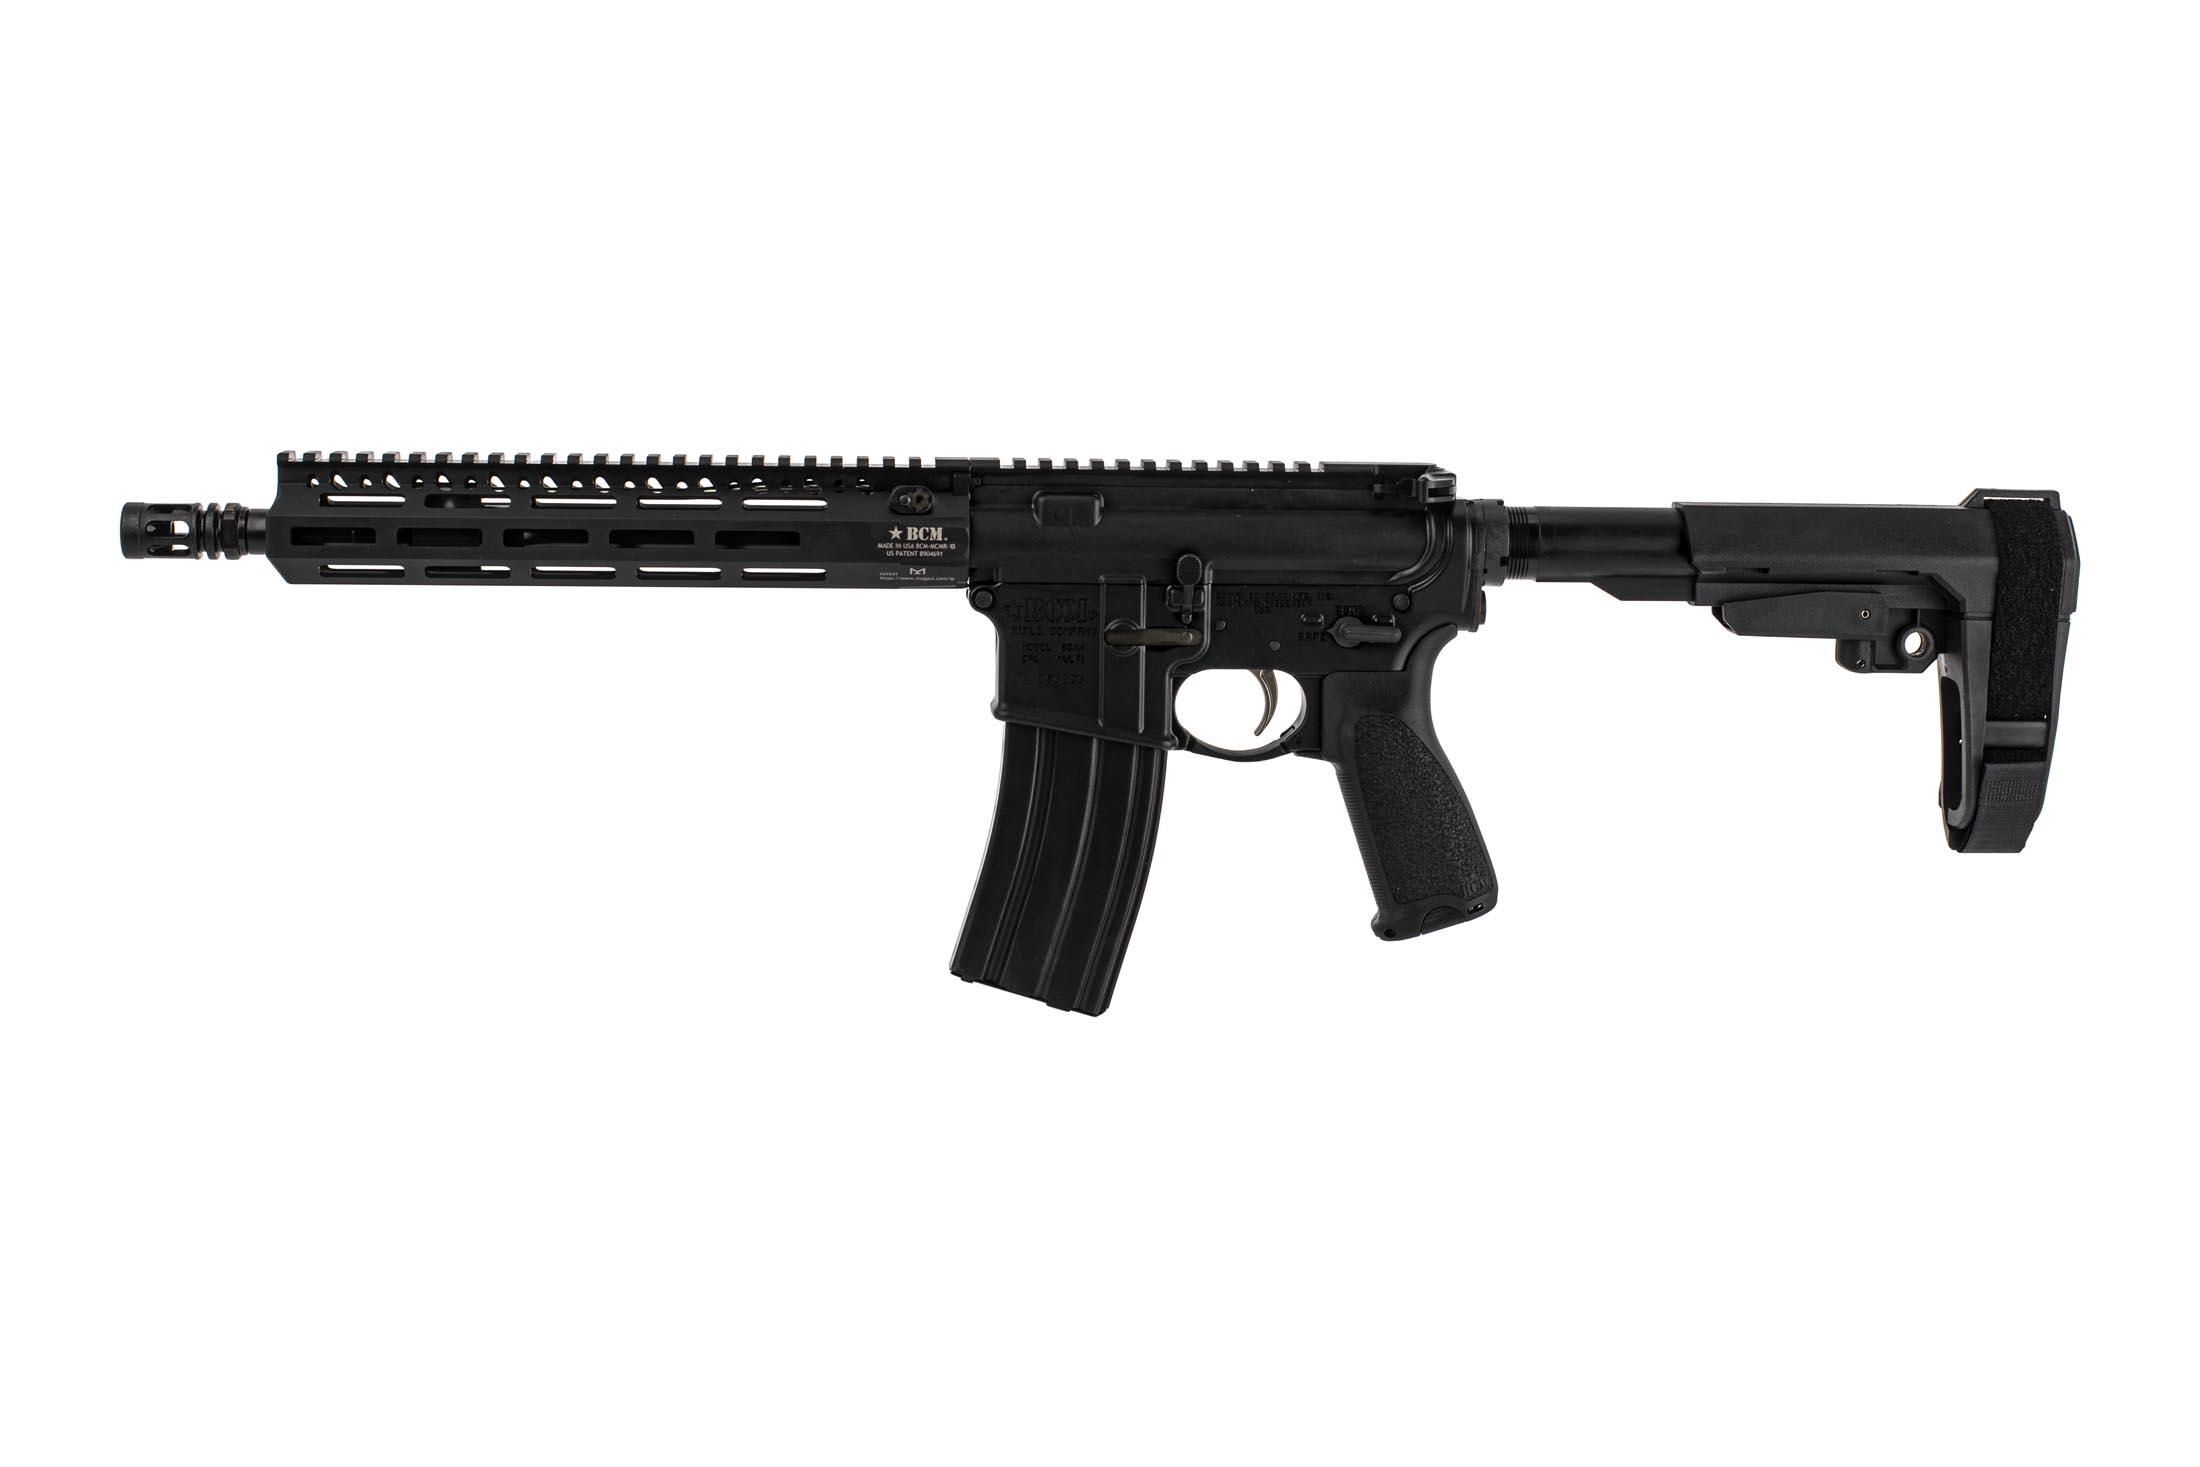 Bravo Company Manufacturing 11.5 RECCE-11 M-LOK rifle with carbine gas system and BCM PNT trigger